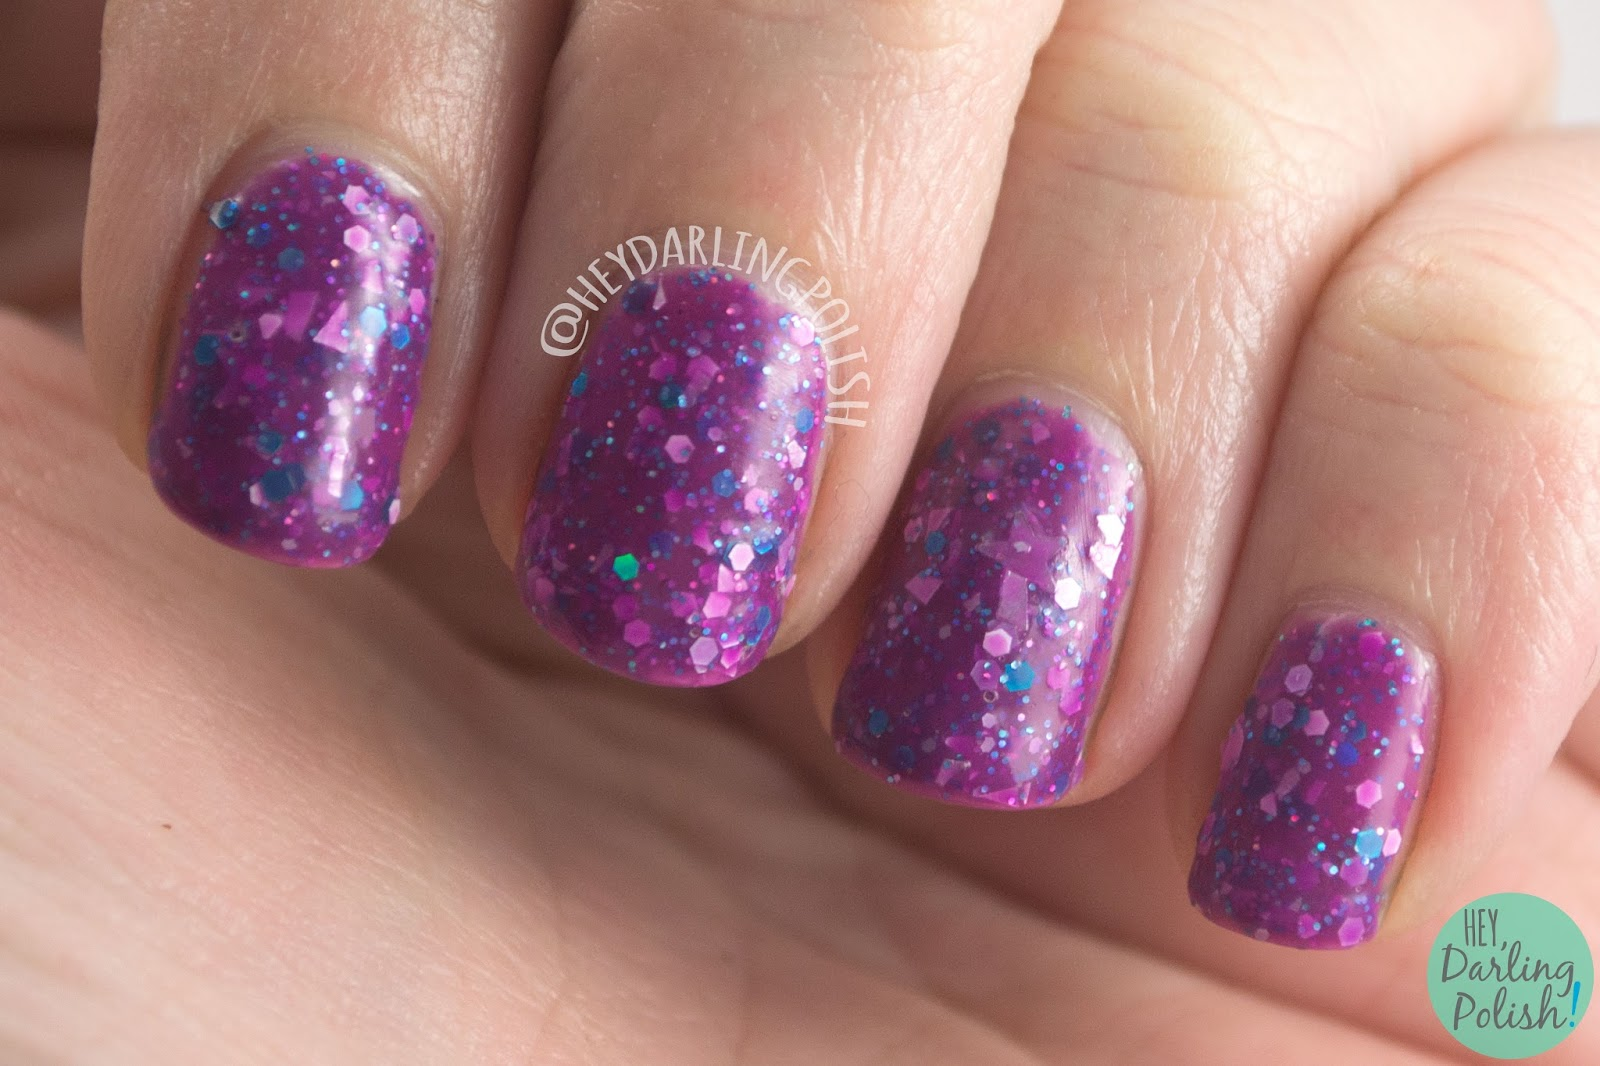 nails, nail polish, indie polish, kbshimmer, hey darling polish, midsummers night, glitter, fuchsia, swatch